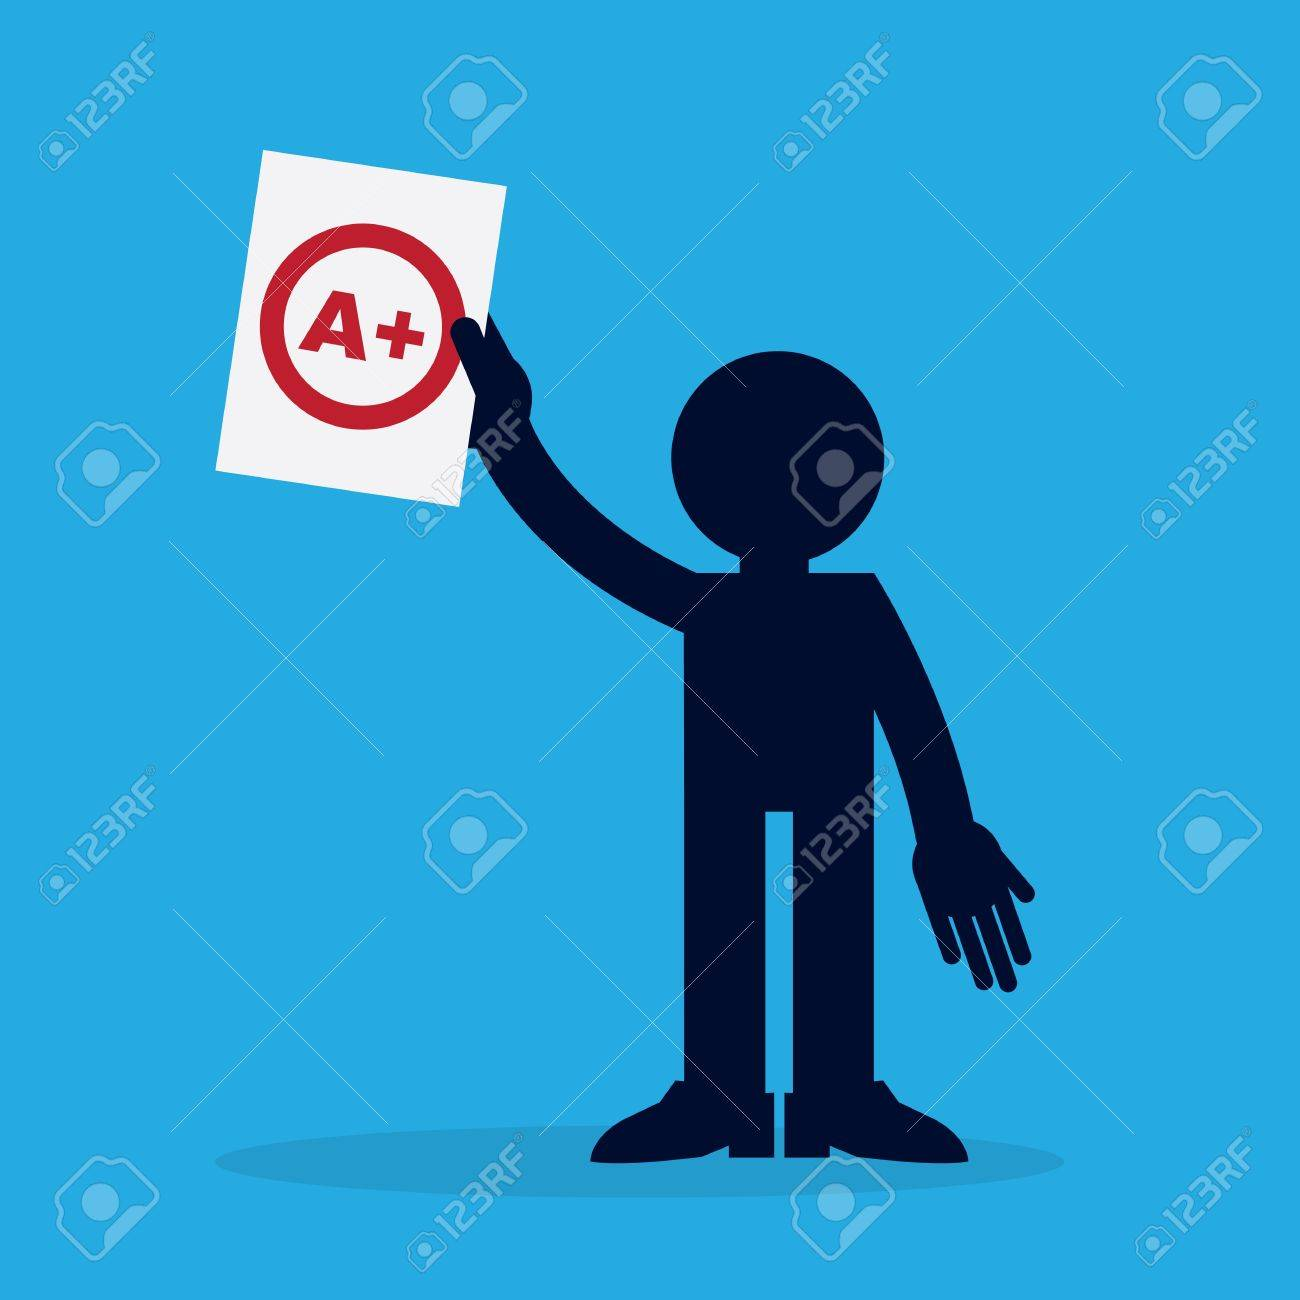 Silhouette figure holding up a piece of paper with an A plus grade Stock Vector - 21479518